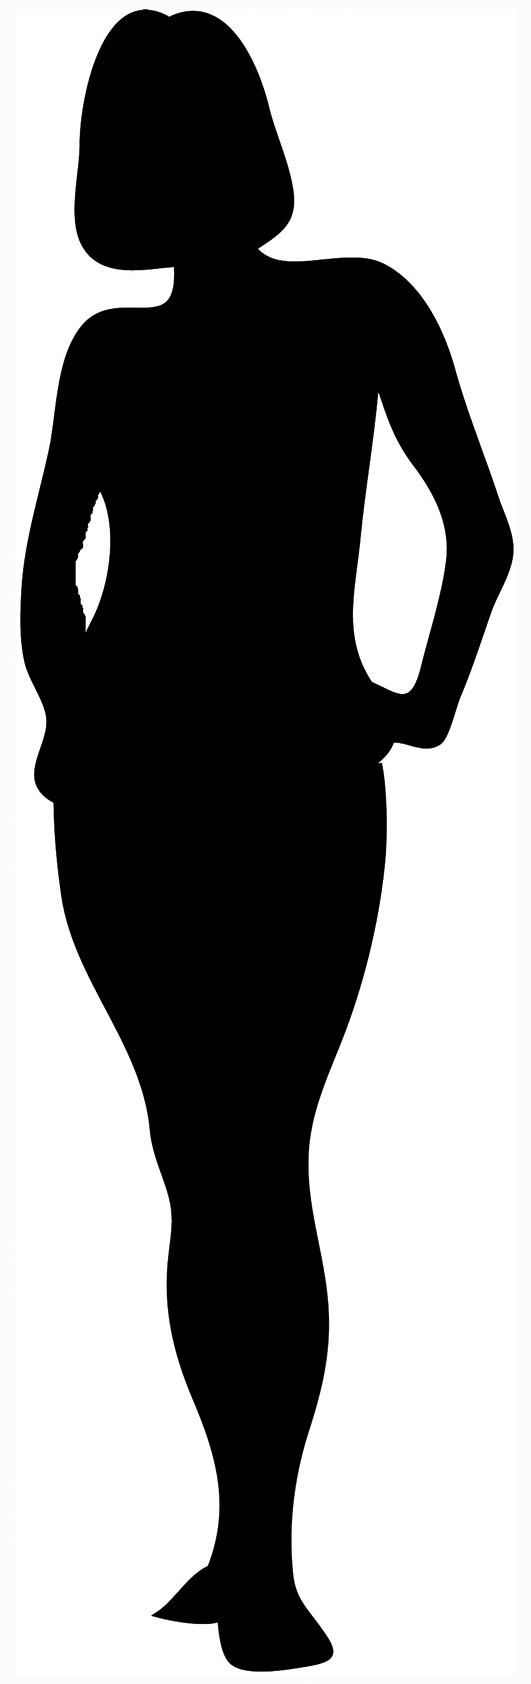 531x1684 Female Silhouette